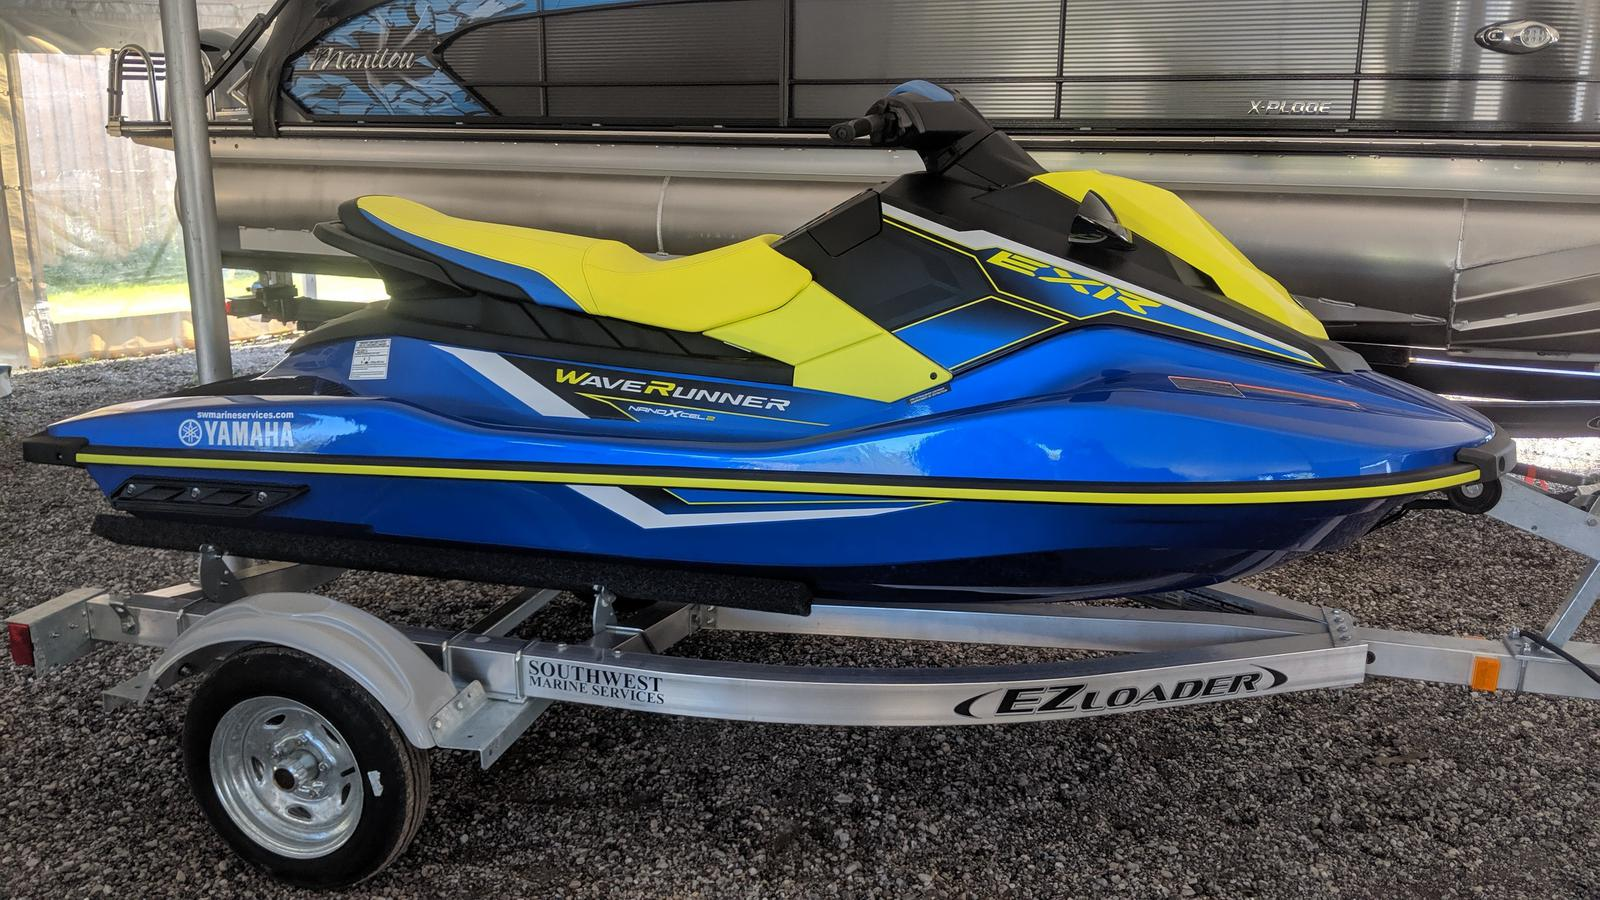 Inventory from Yamaha and Sea Ray Southwest Marine Services